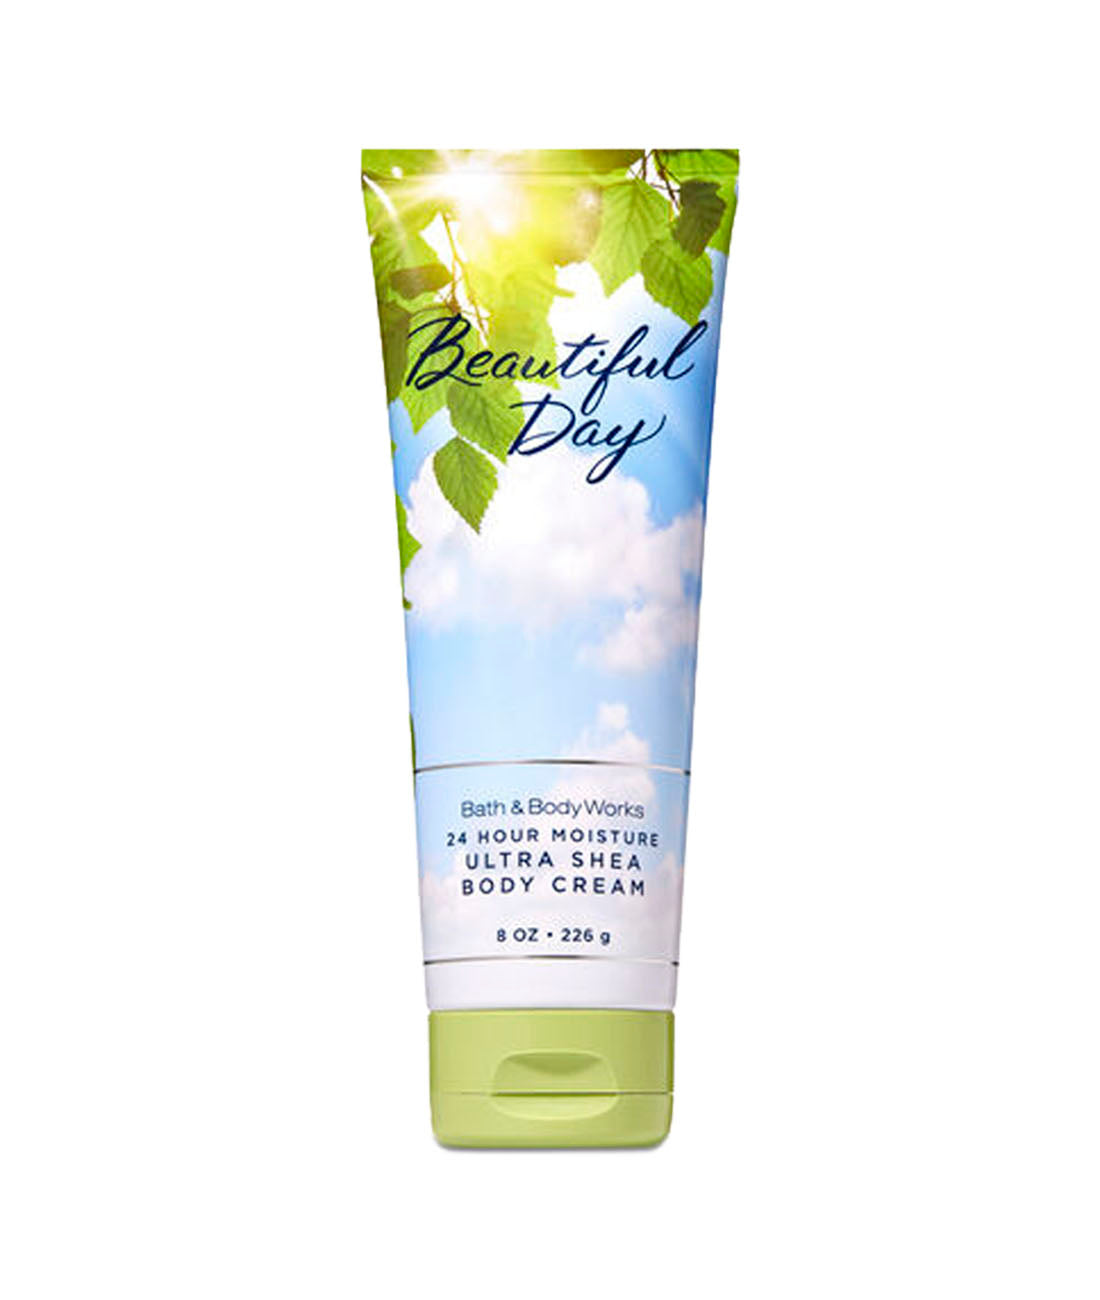 Body Cream Bath & Body Works Beautiful Day 226 g / 8 oz